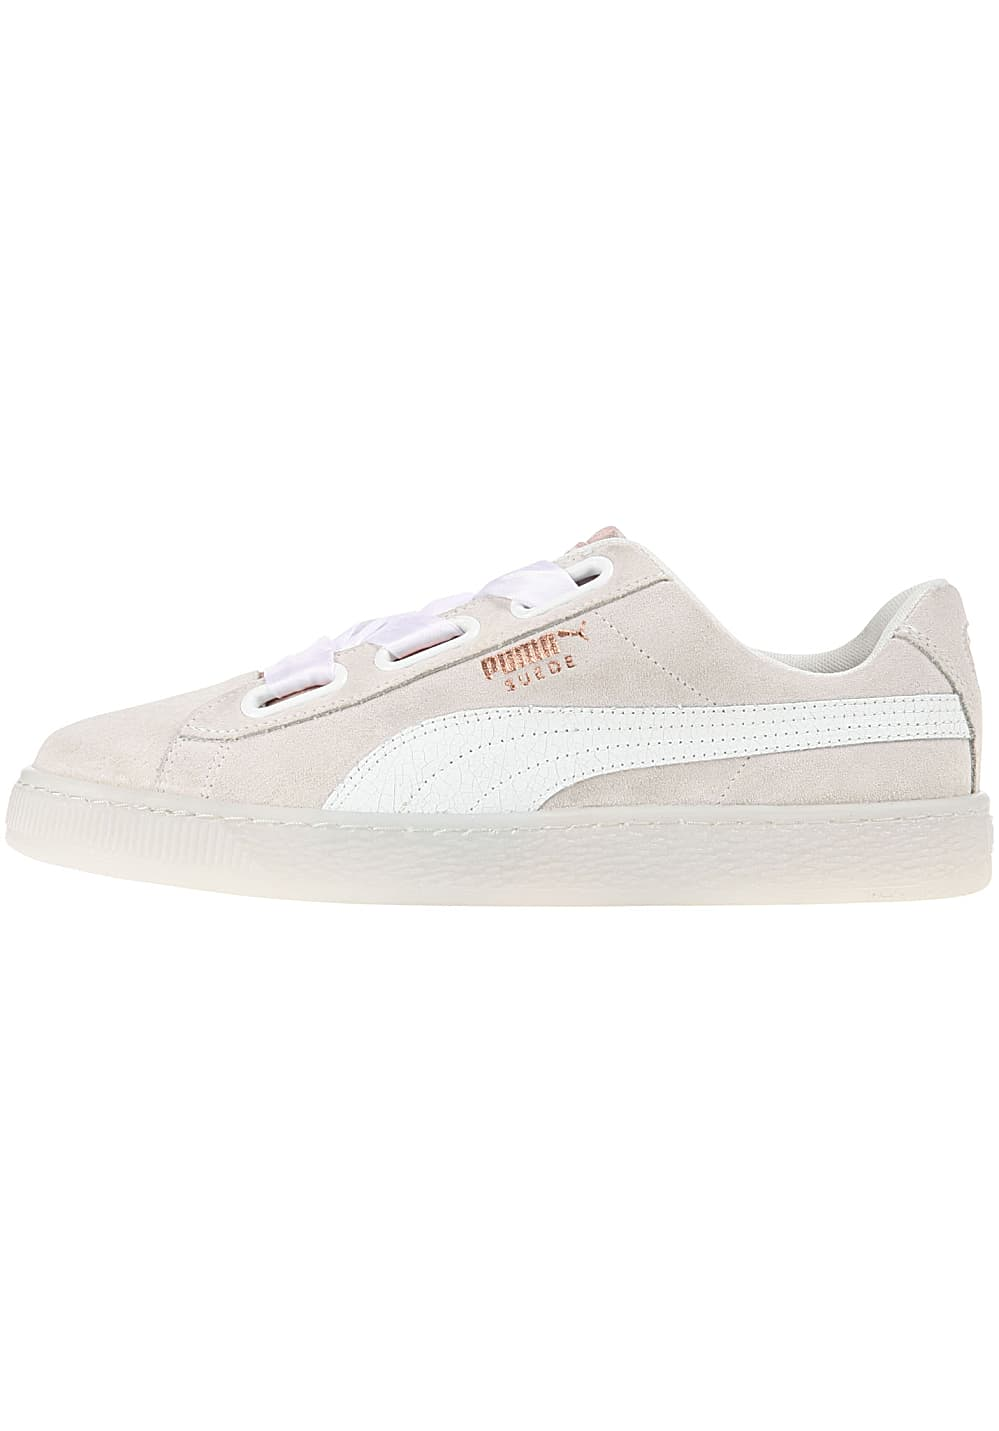 official photos 37363 a240c Puma Suede Heart Artica - Sneakers for Women - Beige ...